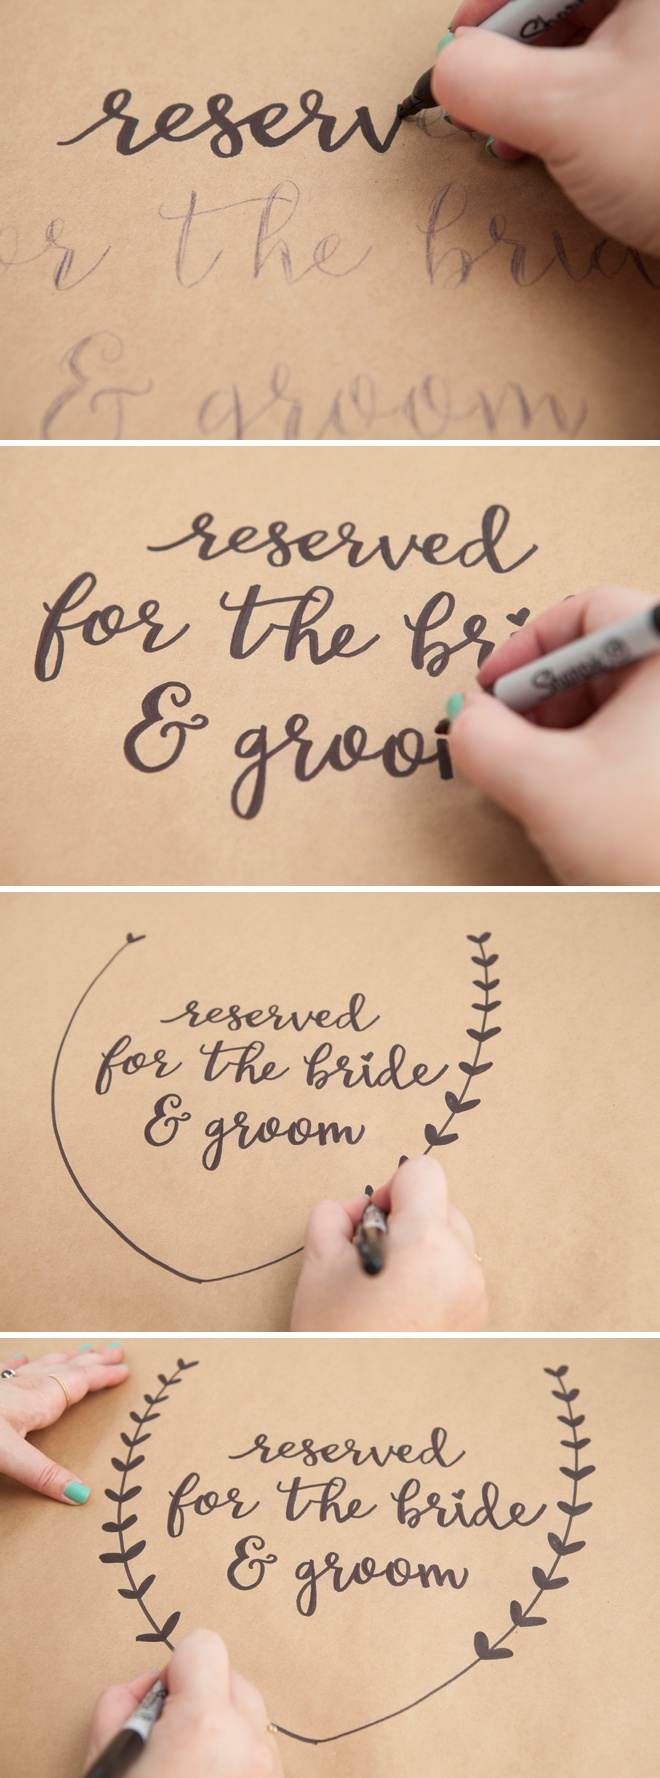 Awesome Diy Idea For Using A Sharpie On Kraft Paper Wedding Table Signage And Decor